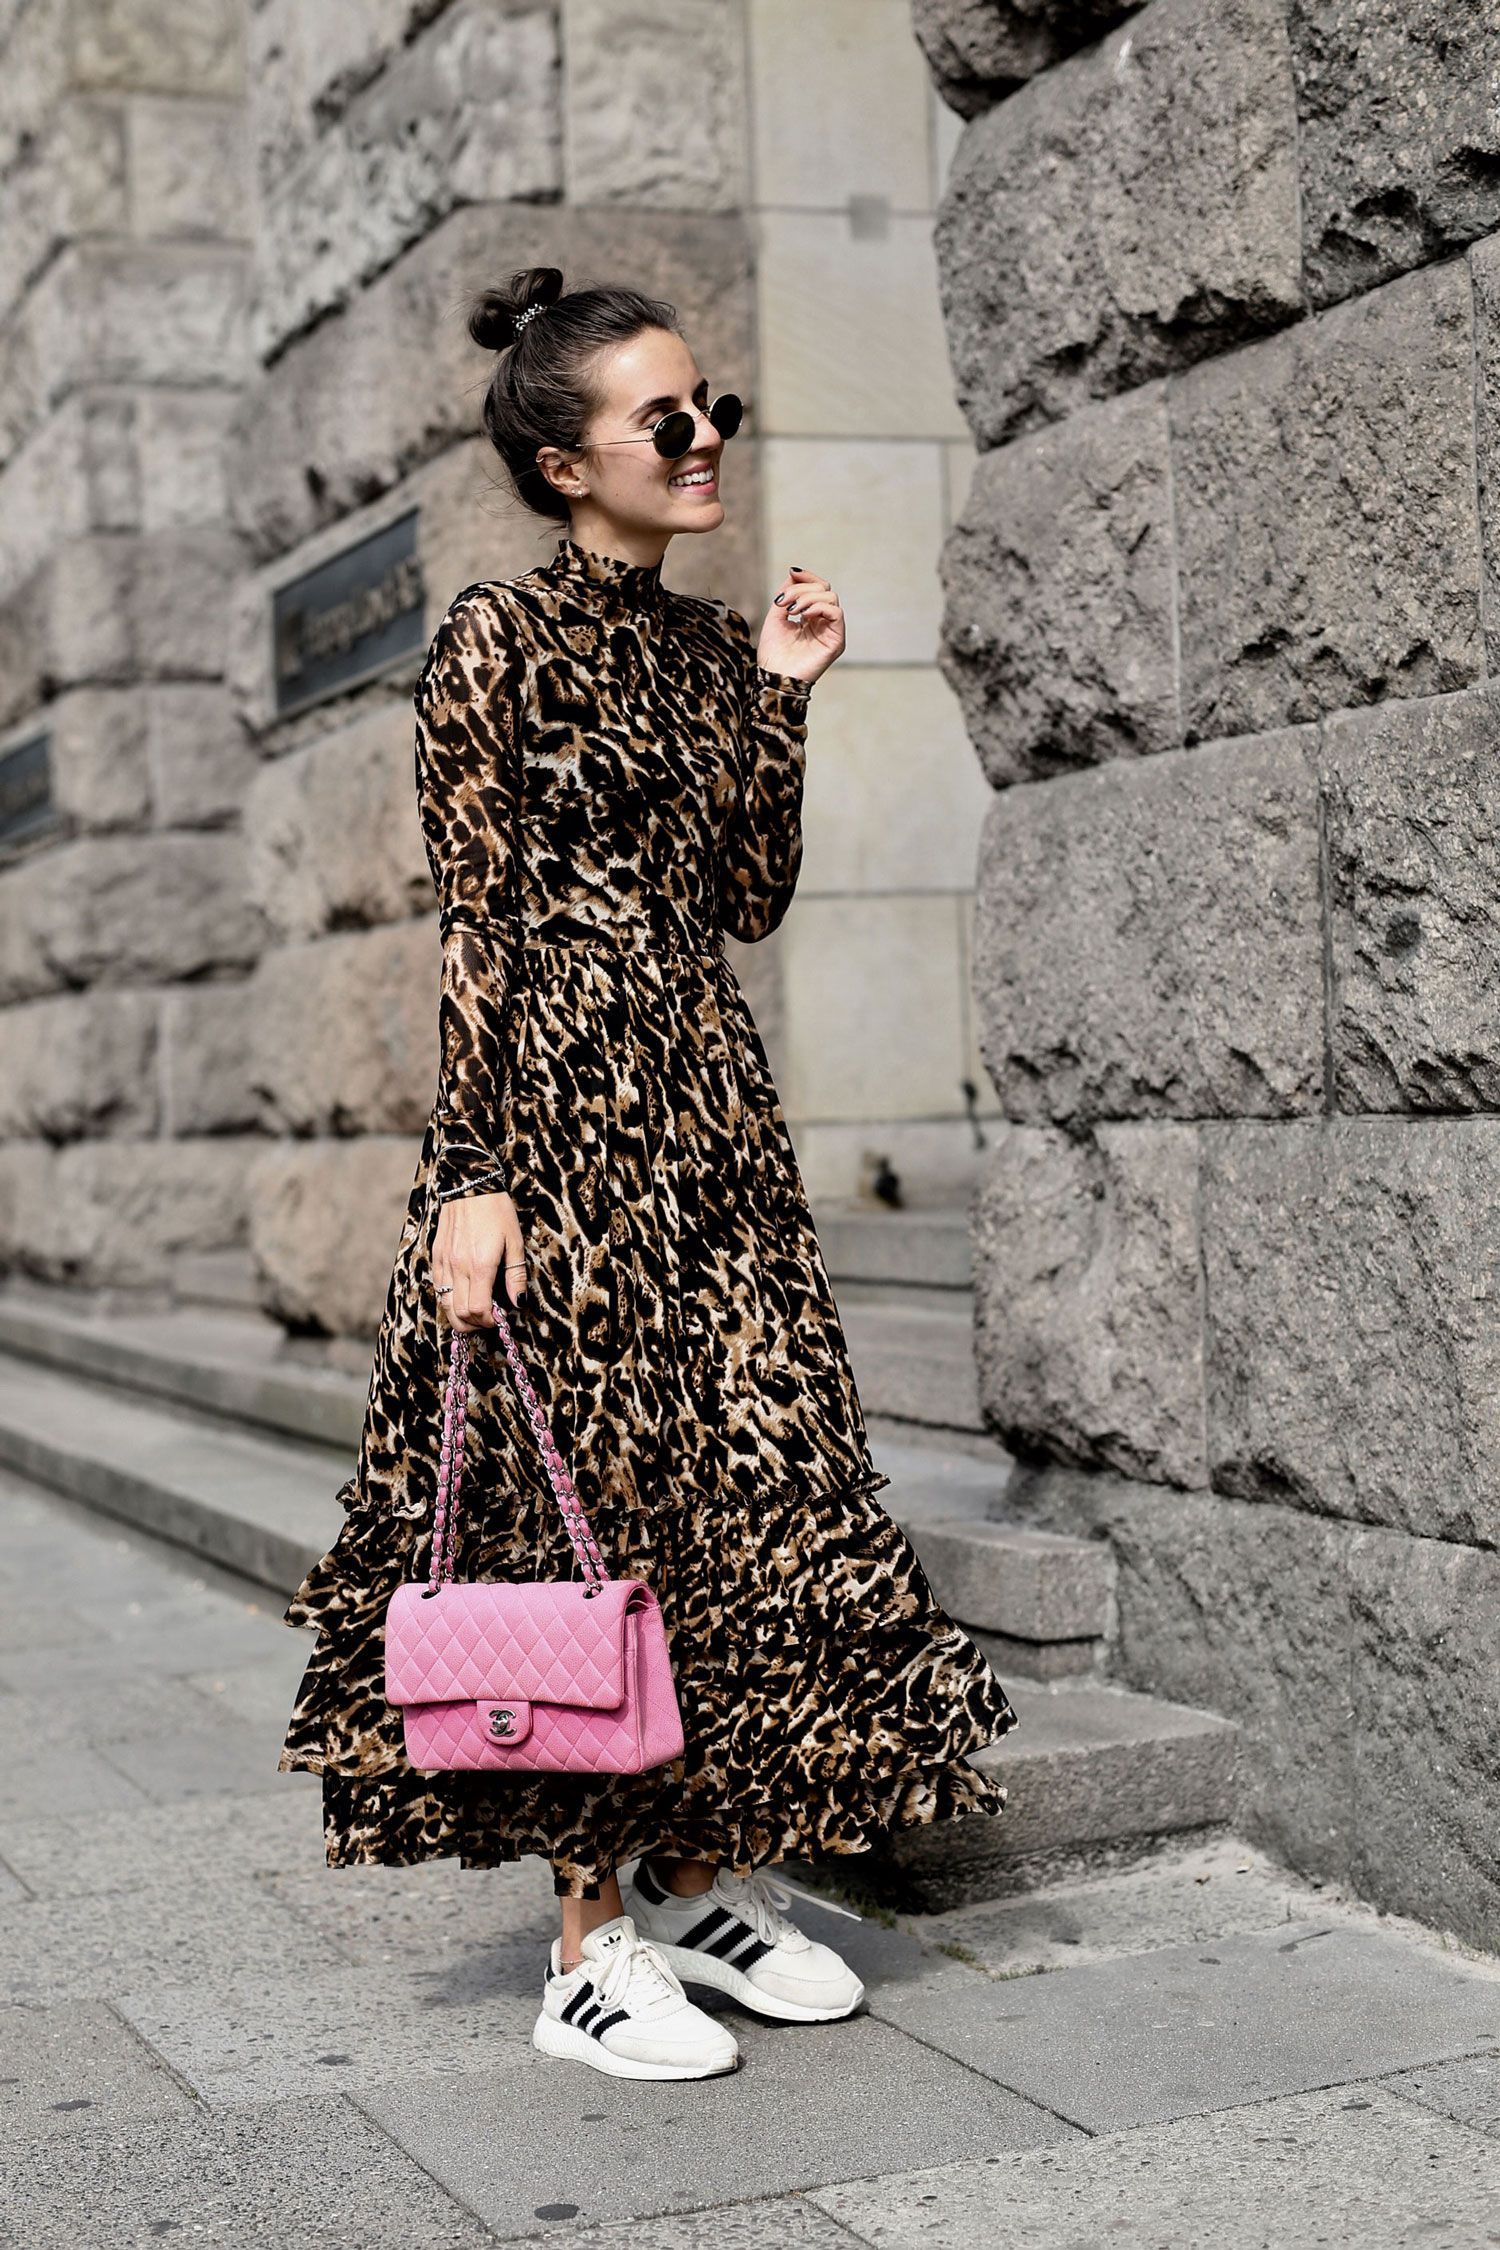 Streetstyle  Leo Dress And Pink Chanel  Shoppisticated Streetstyle  Leo Dress And Pink Chanel  Shoppisticated